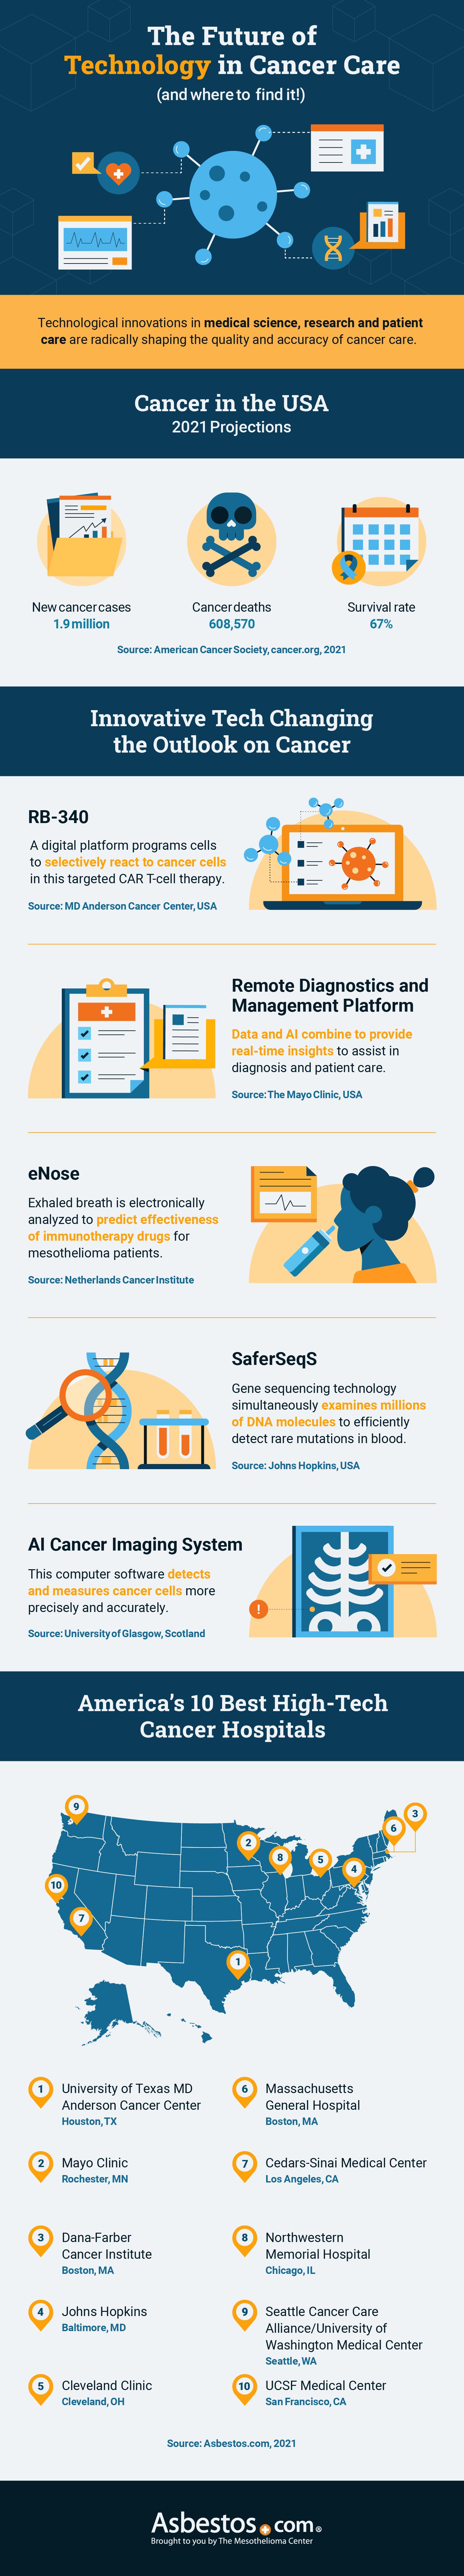 An infographic about the future of technology in cancer care.